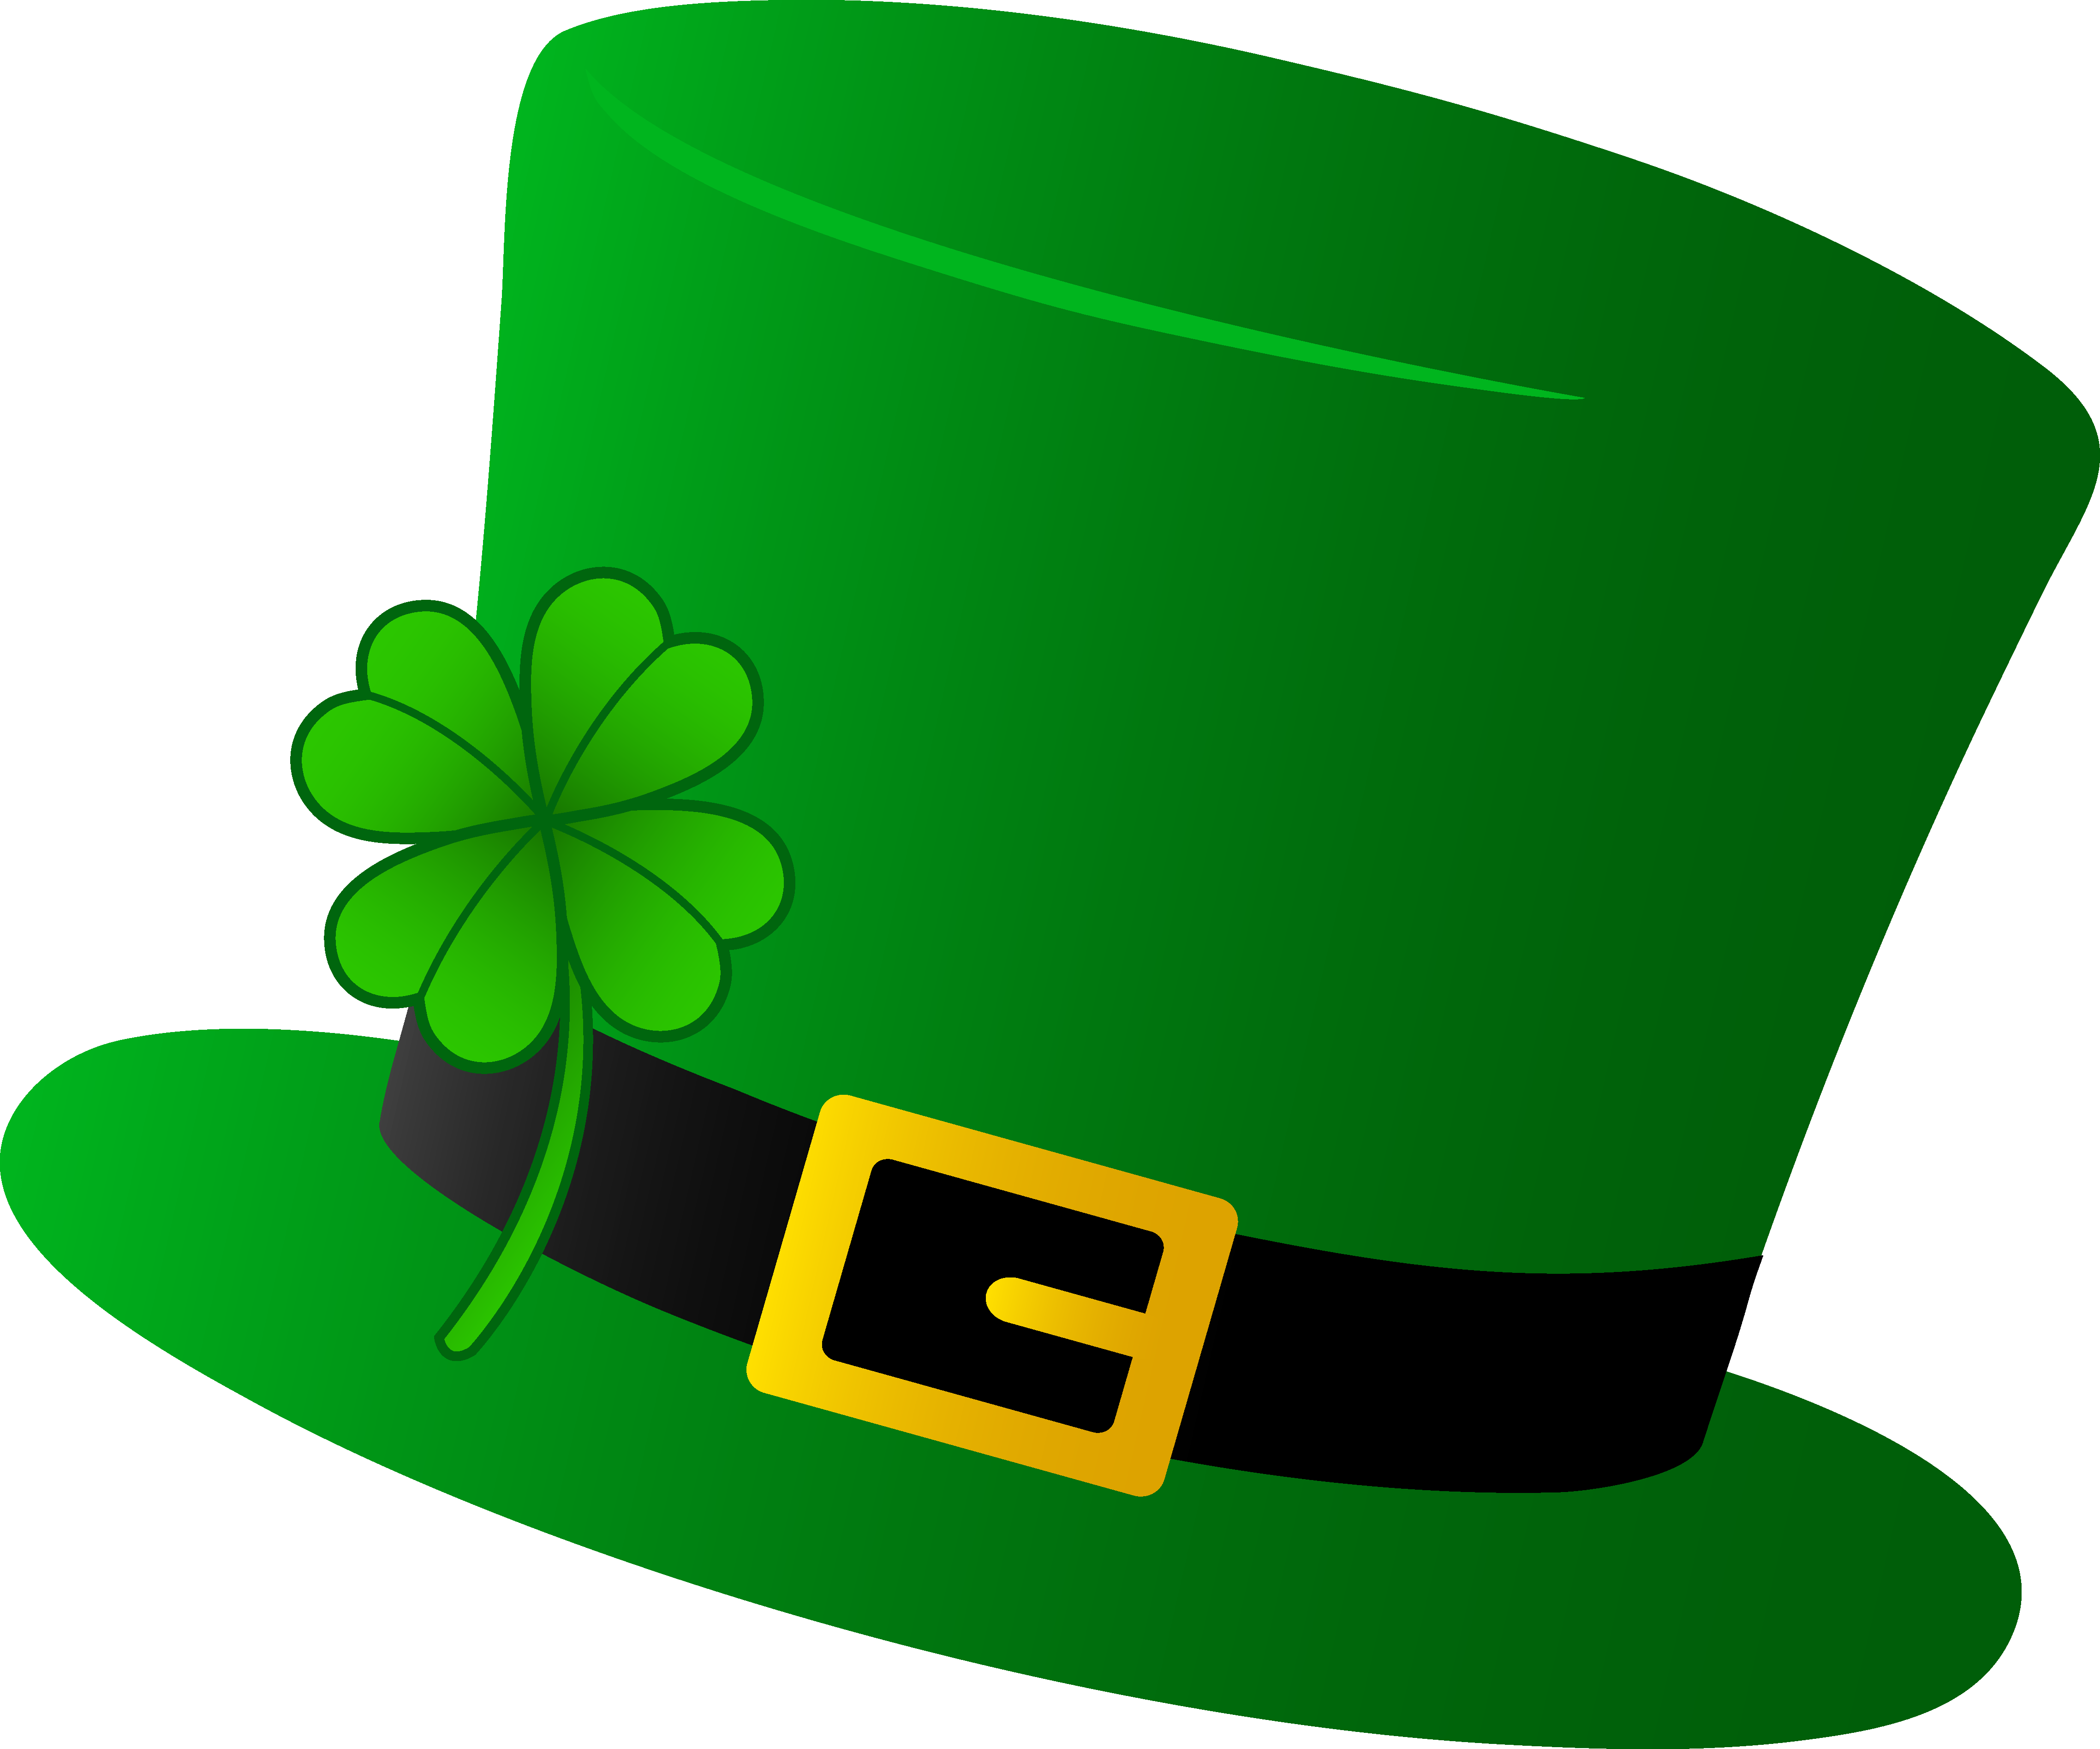 Ireland clipart free png royalty free download Free Irish Clipart | Free download best Free Irish Clipart ... png royalty free download